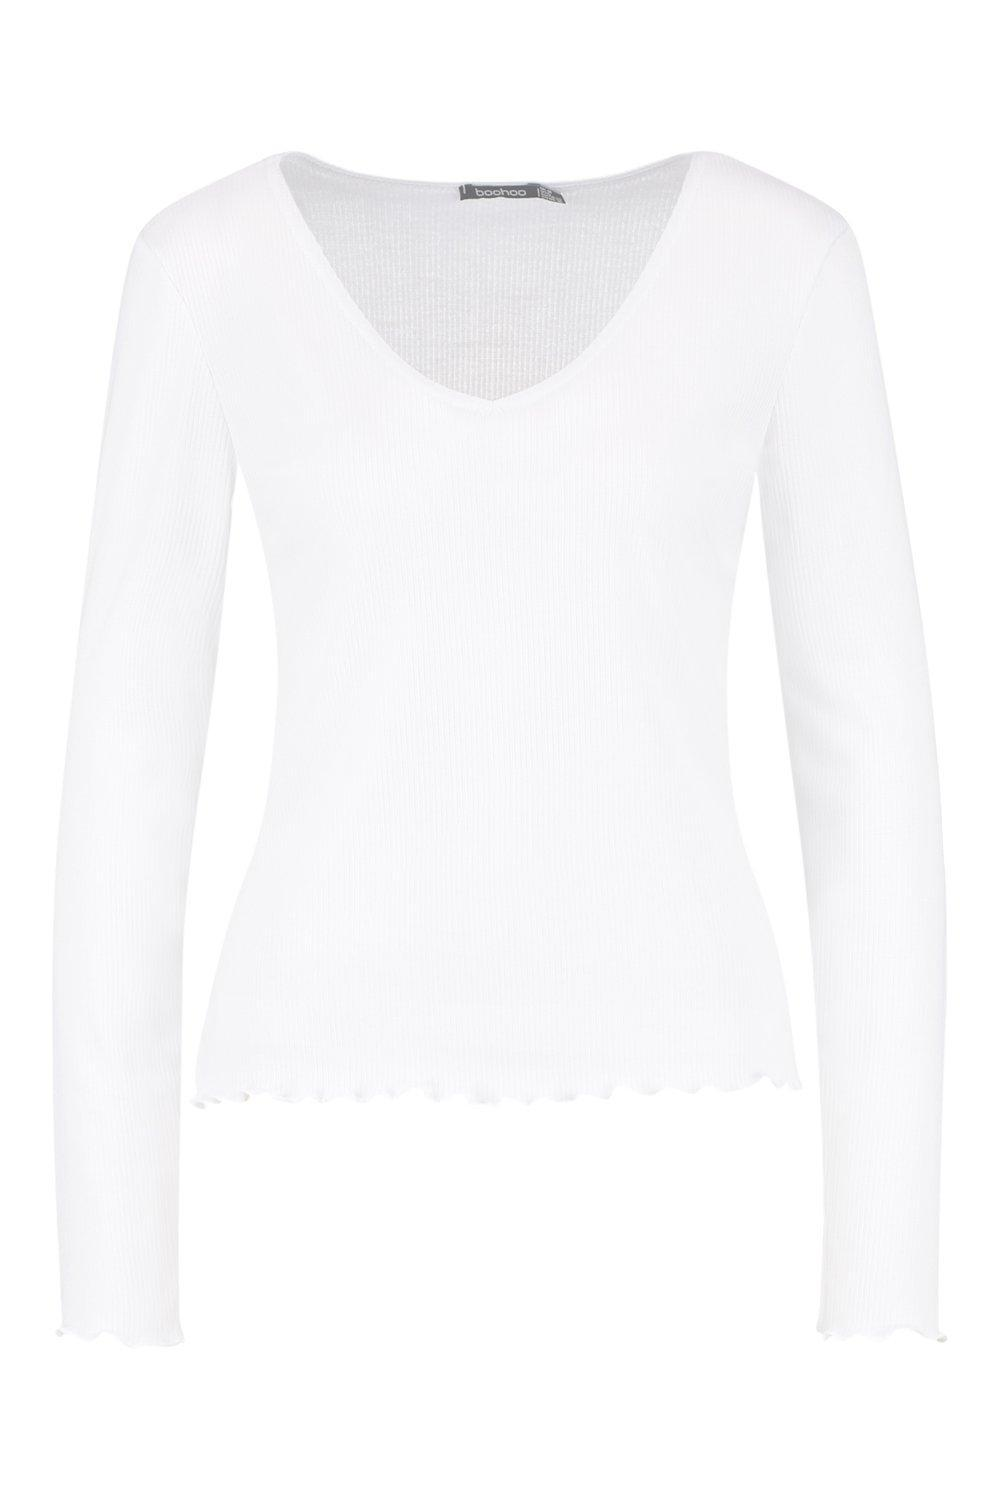 220fe7a689b0e8 Lyst - Boohoo Long Sleeve V Neck Lettuce Hem Top in White